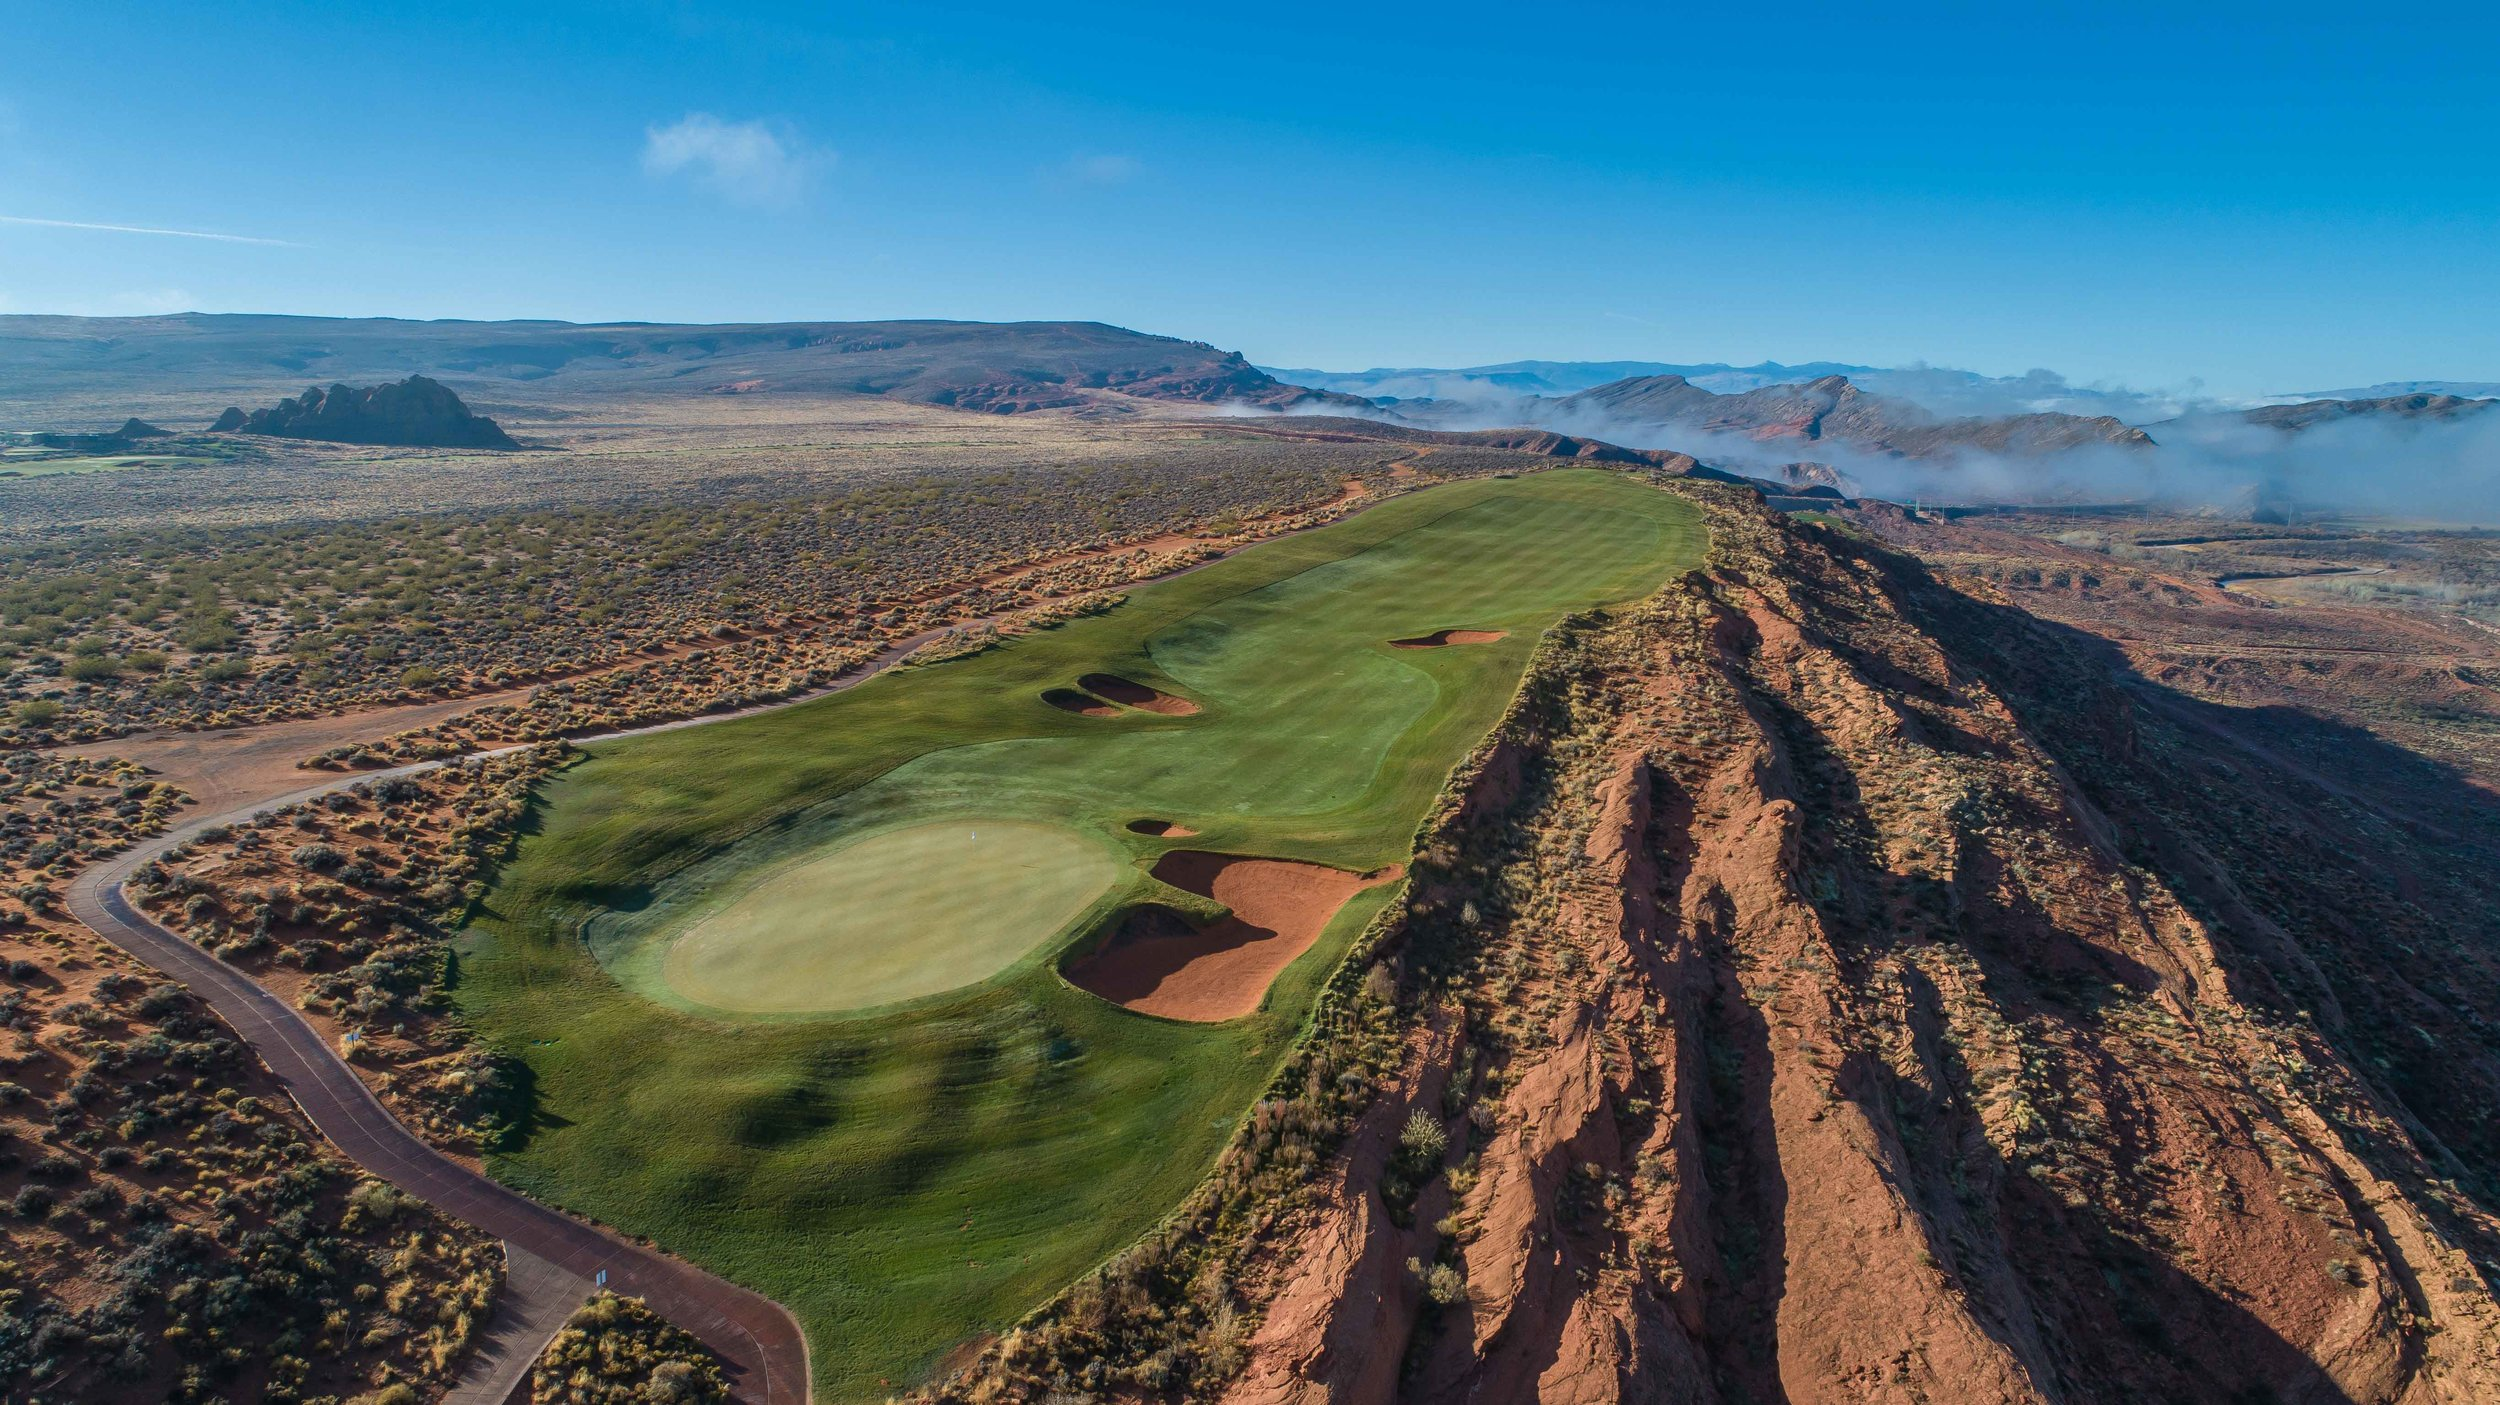 The 14th hole at Sand Hollow